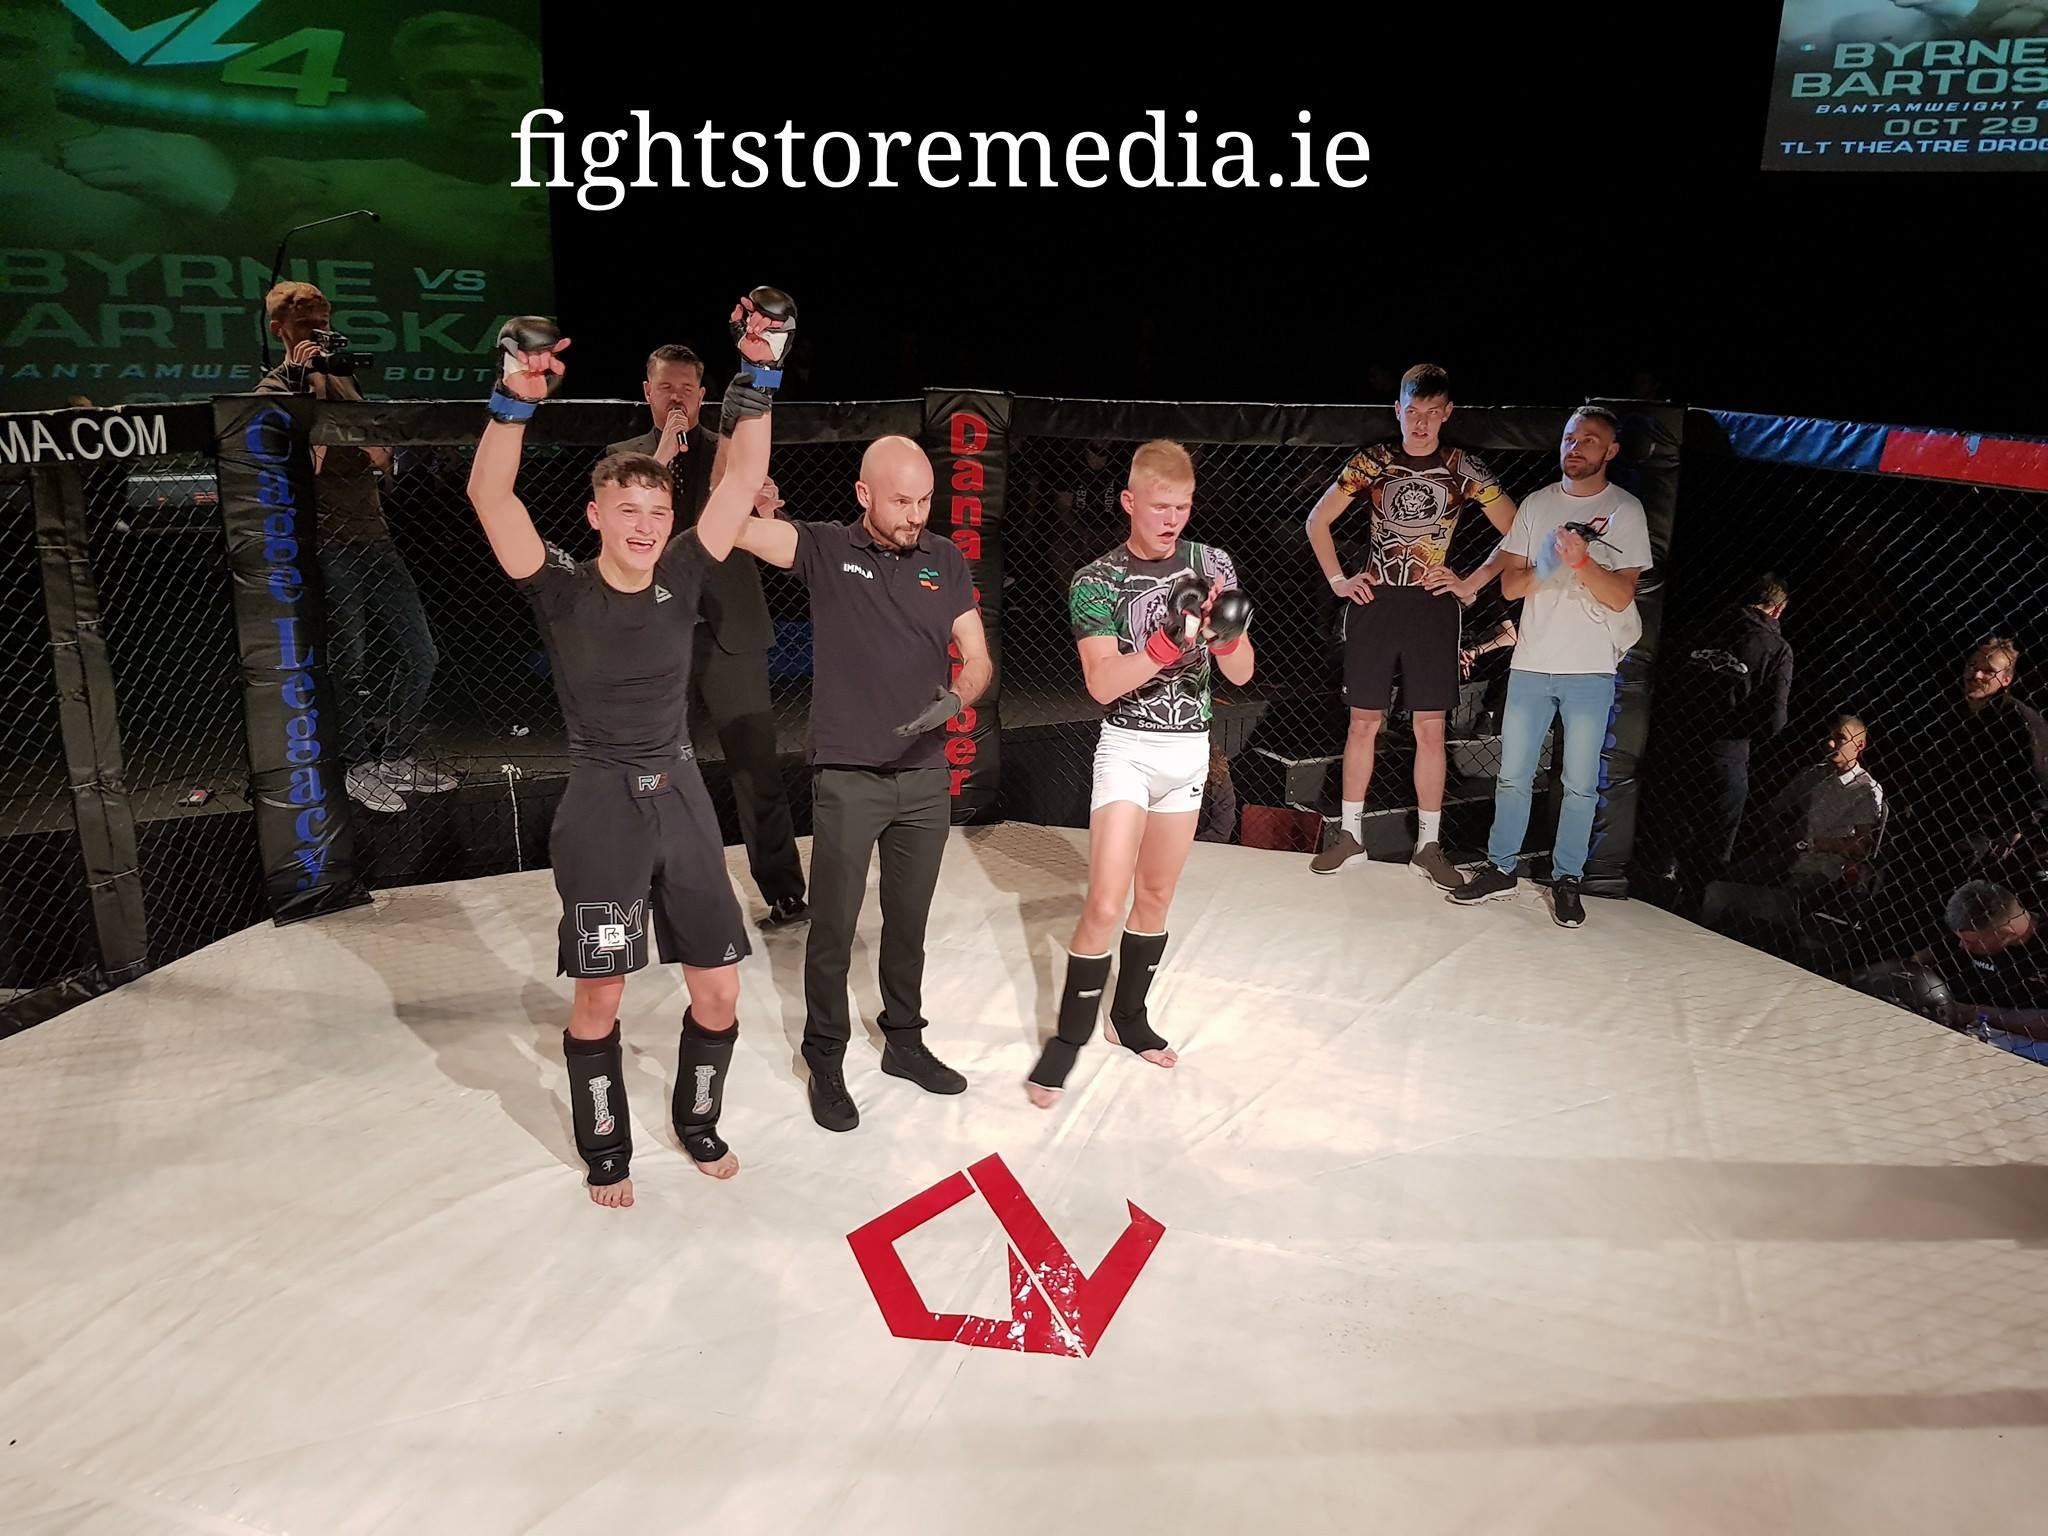 Mikey won his fight at Cage Legacy representing SBG Dublin24